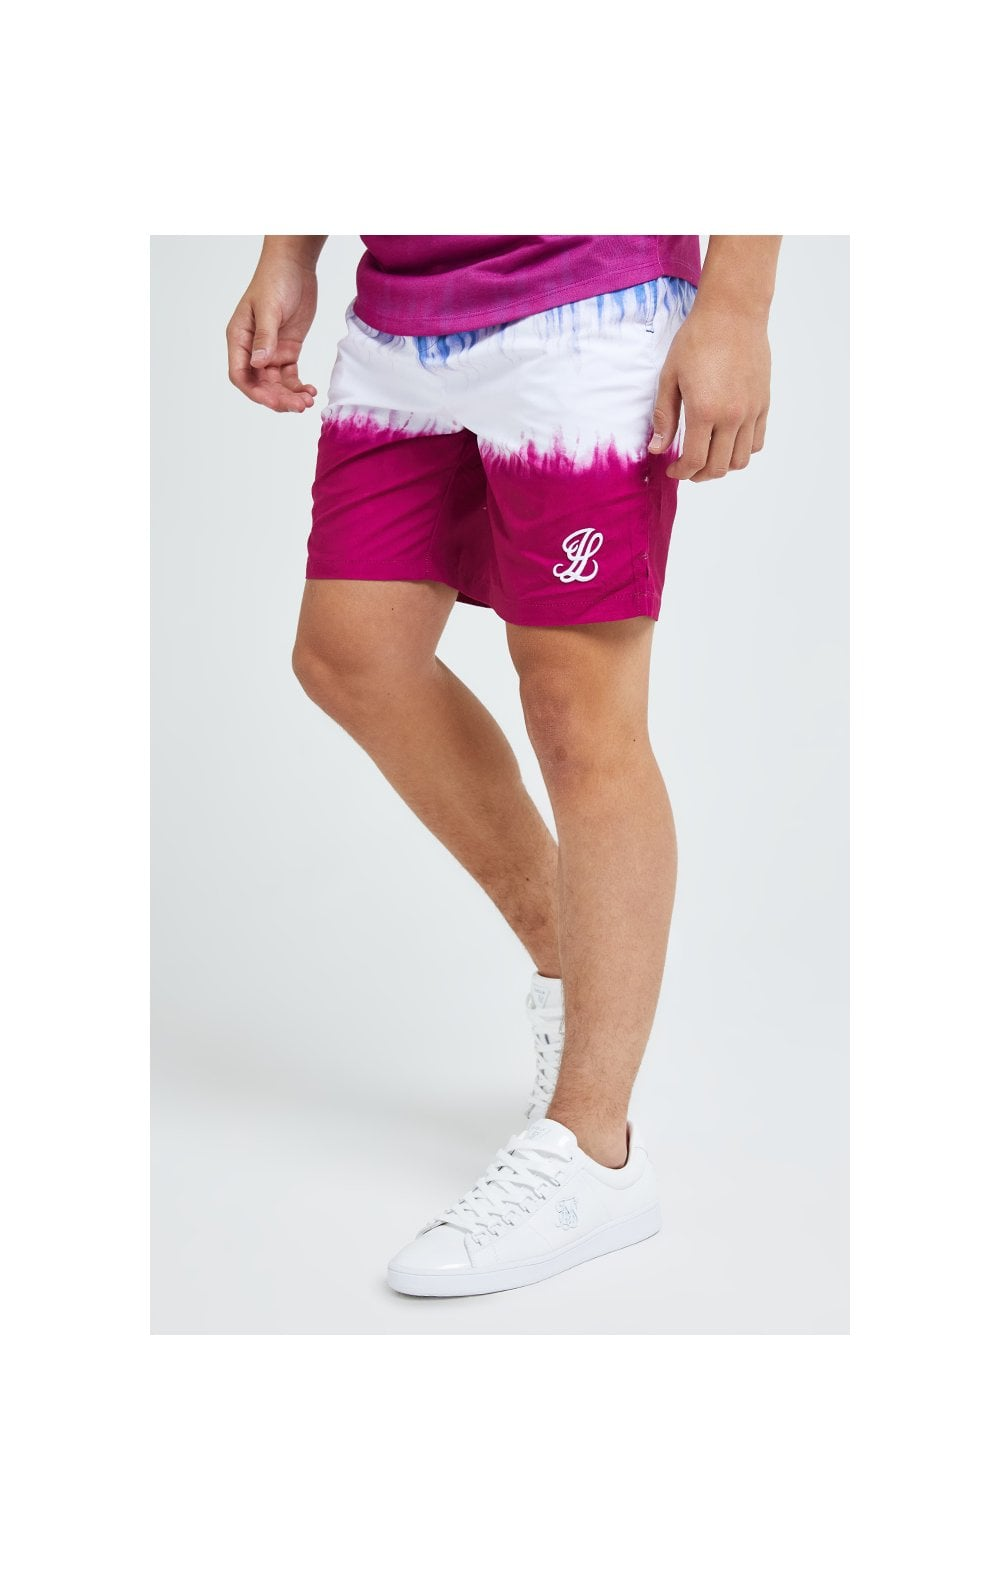 Load image into Gallery viewer, Illusive London Tie Fade Swim Shorts - Indigo, White & Pink